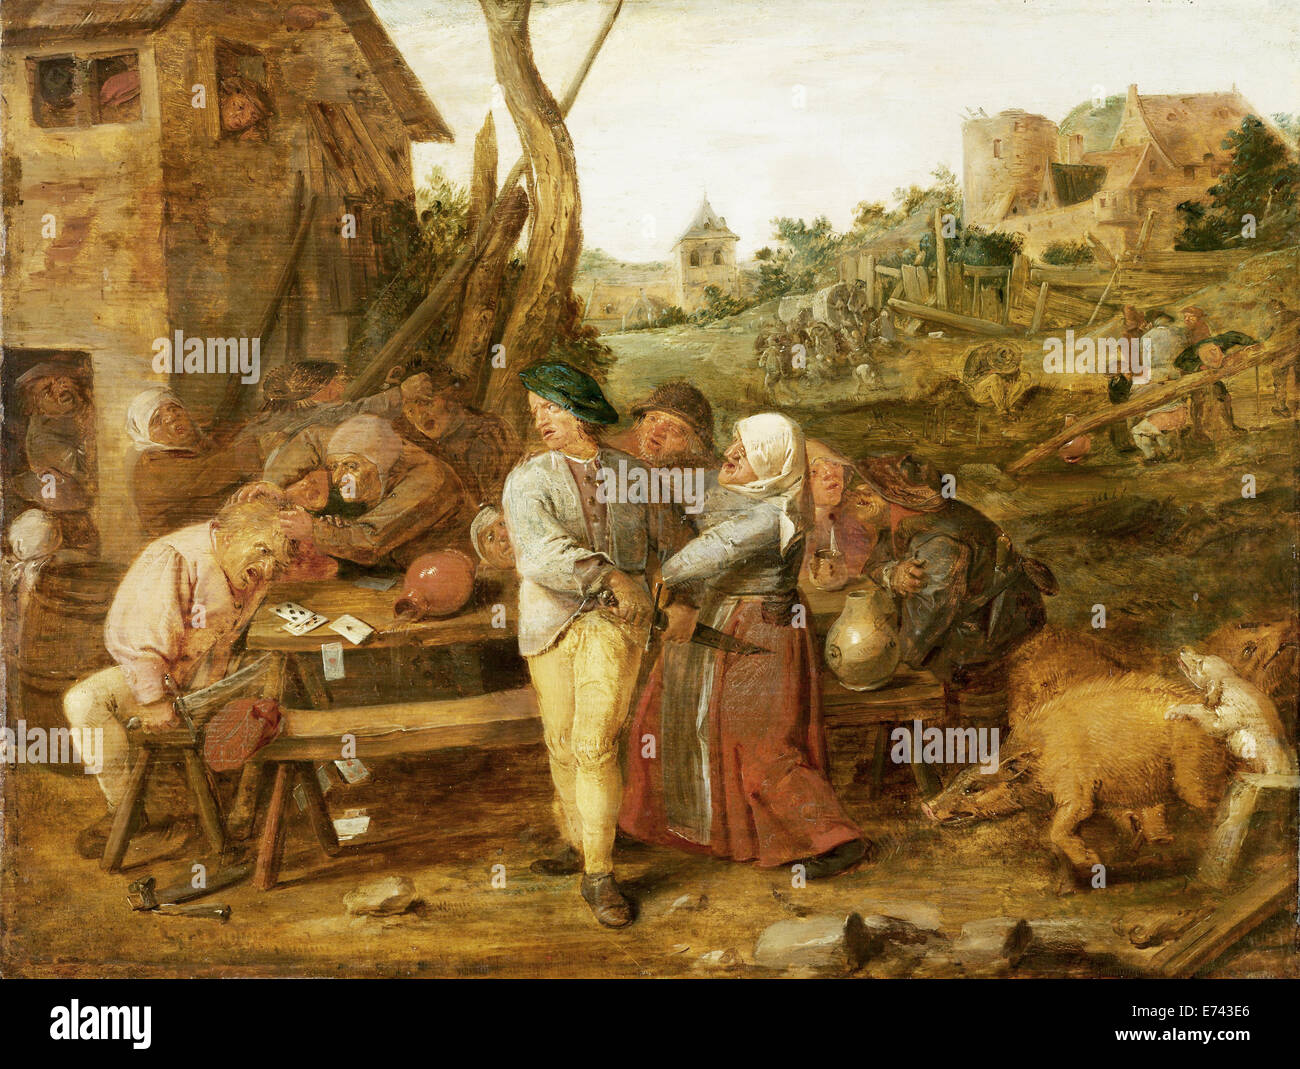 Peasant party - by Adriaen Brouwer, 1620 - 1630 - Stock Image